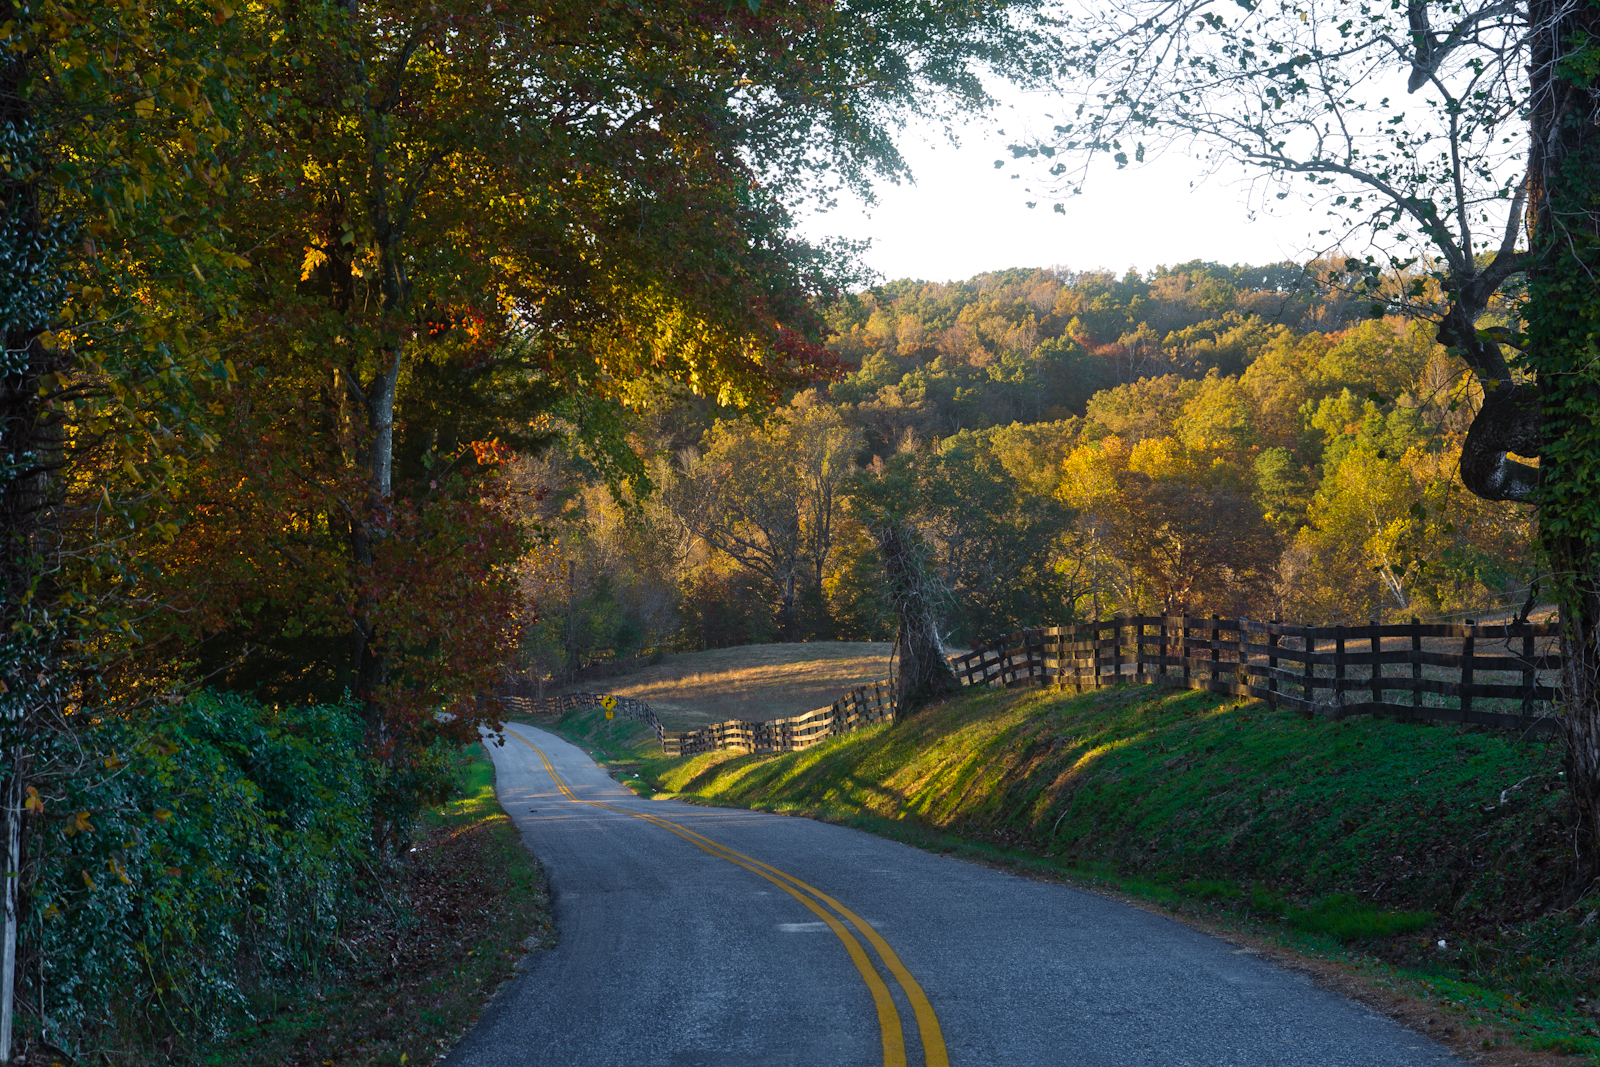 Autumn-country-backroad-2-50-of-1